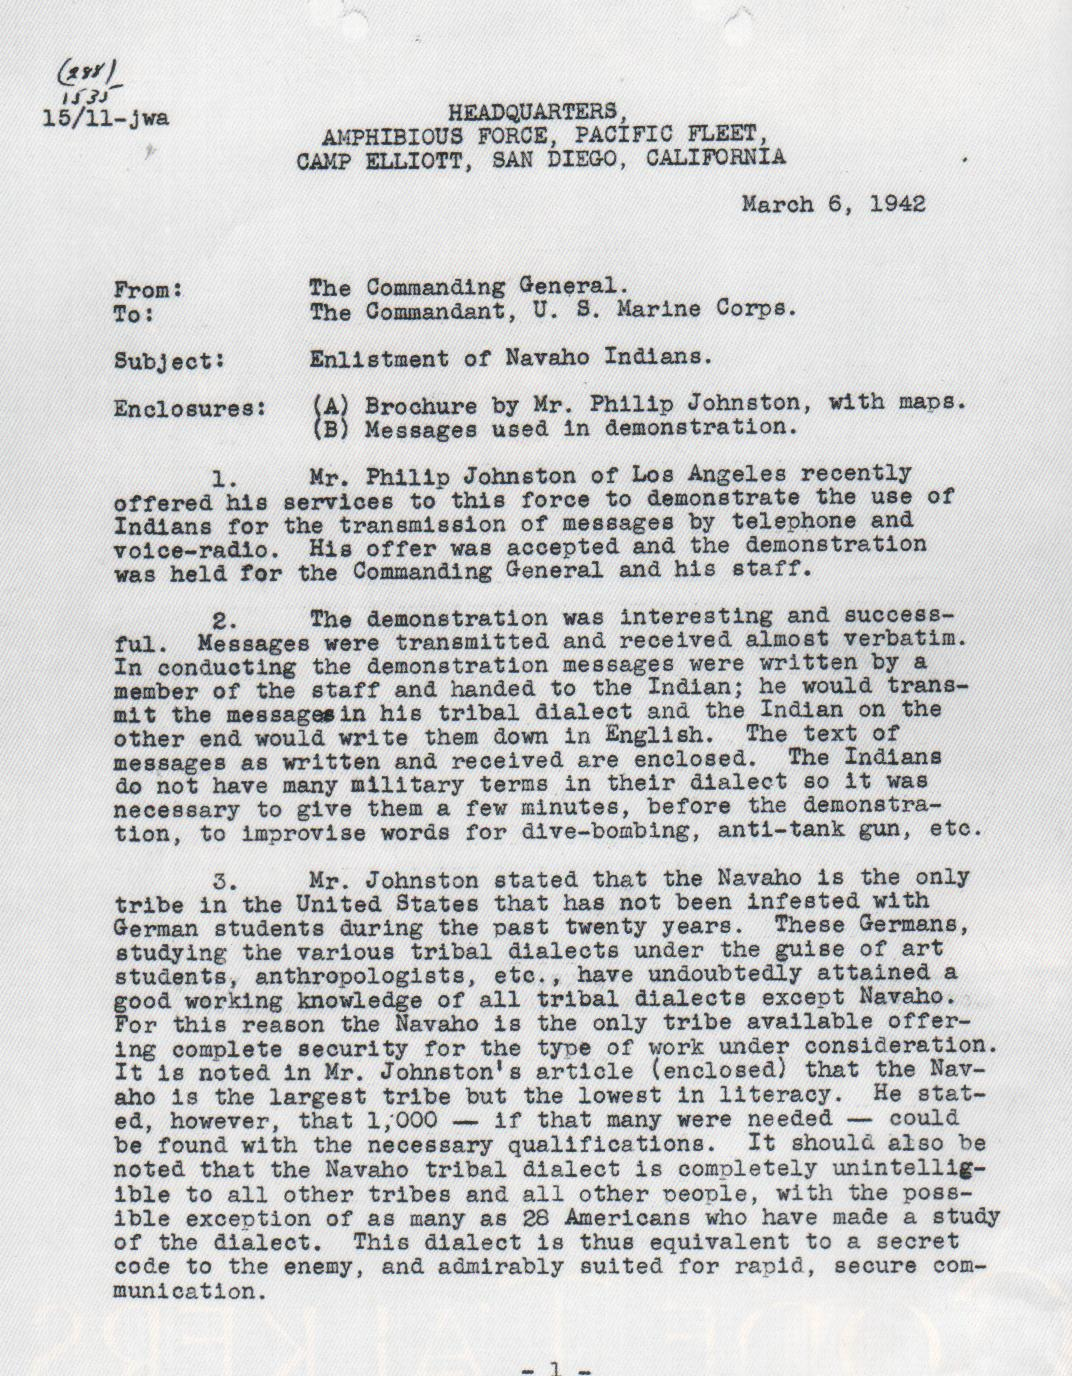 Memorandum Regarding The Enlistment Of Navajo Indians